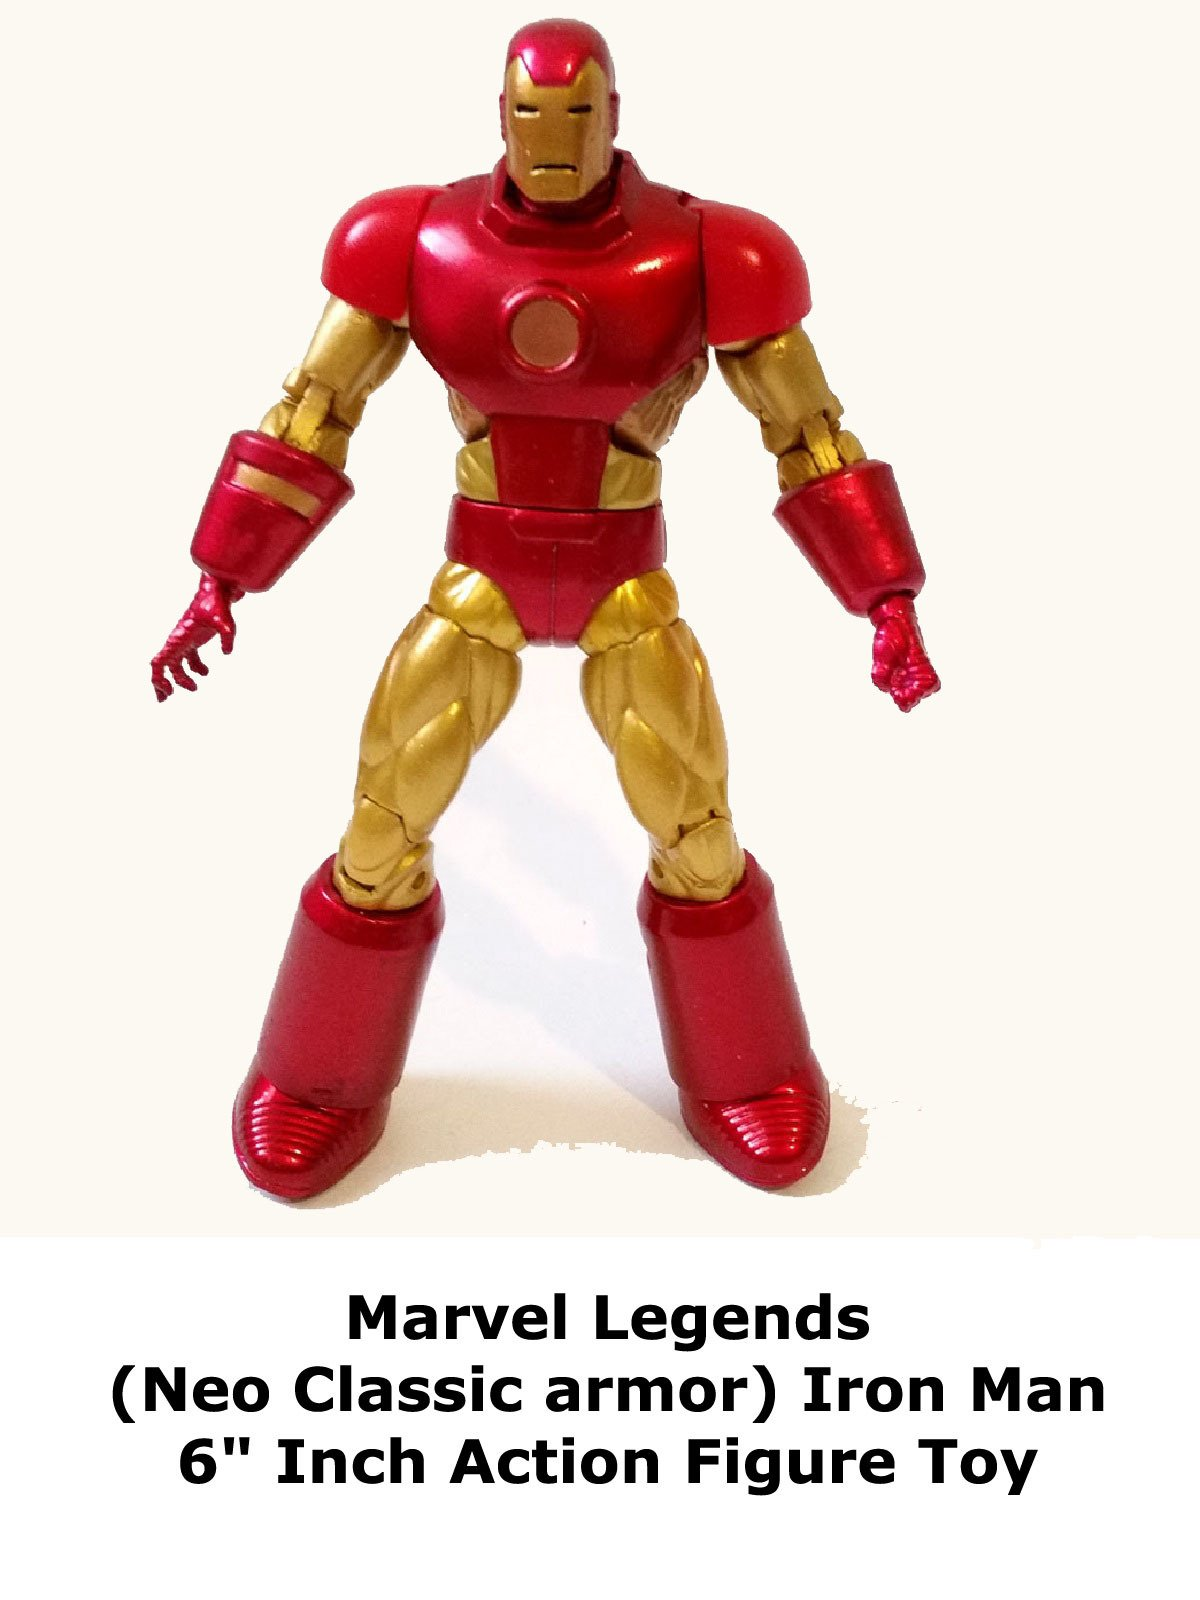 "Review: Marvel Legends (Neo Classic armor) Iron Man 6"" Inch Action Figure Toy"